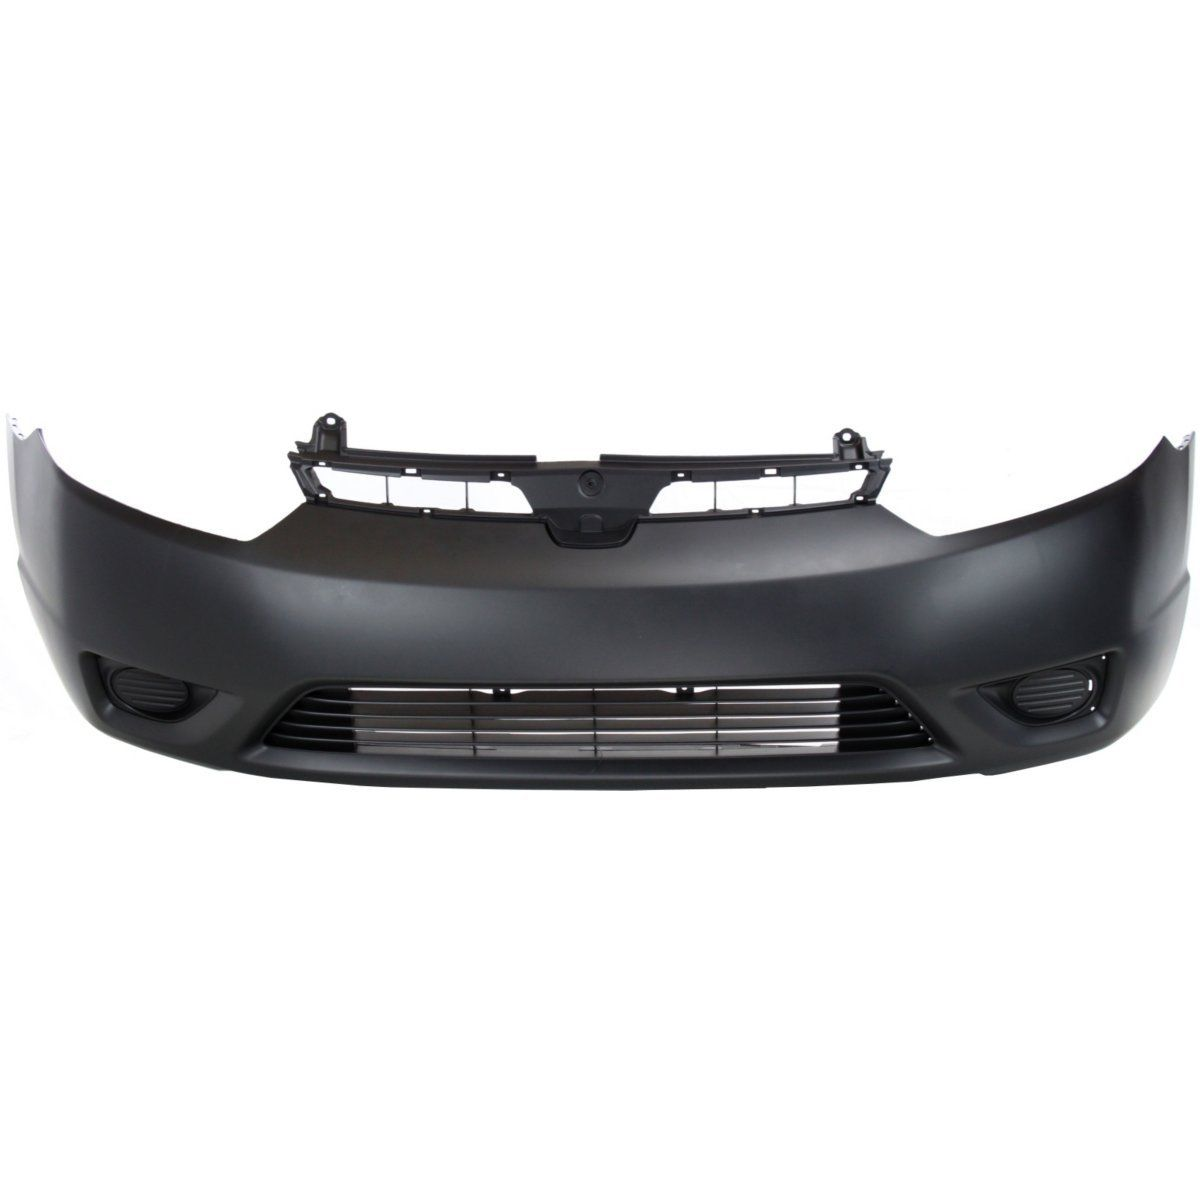 With emblem provision For Civic 2006-2008 Front Bumper Cover Plastic Primed